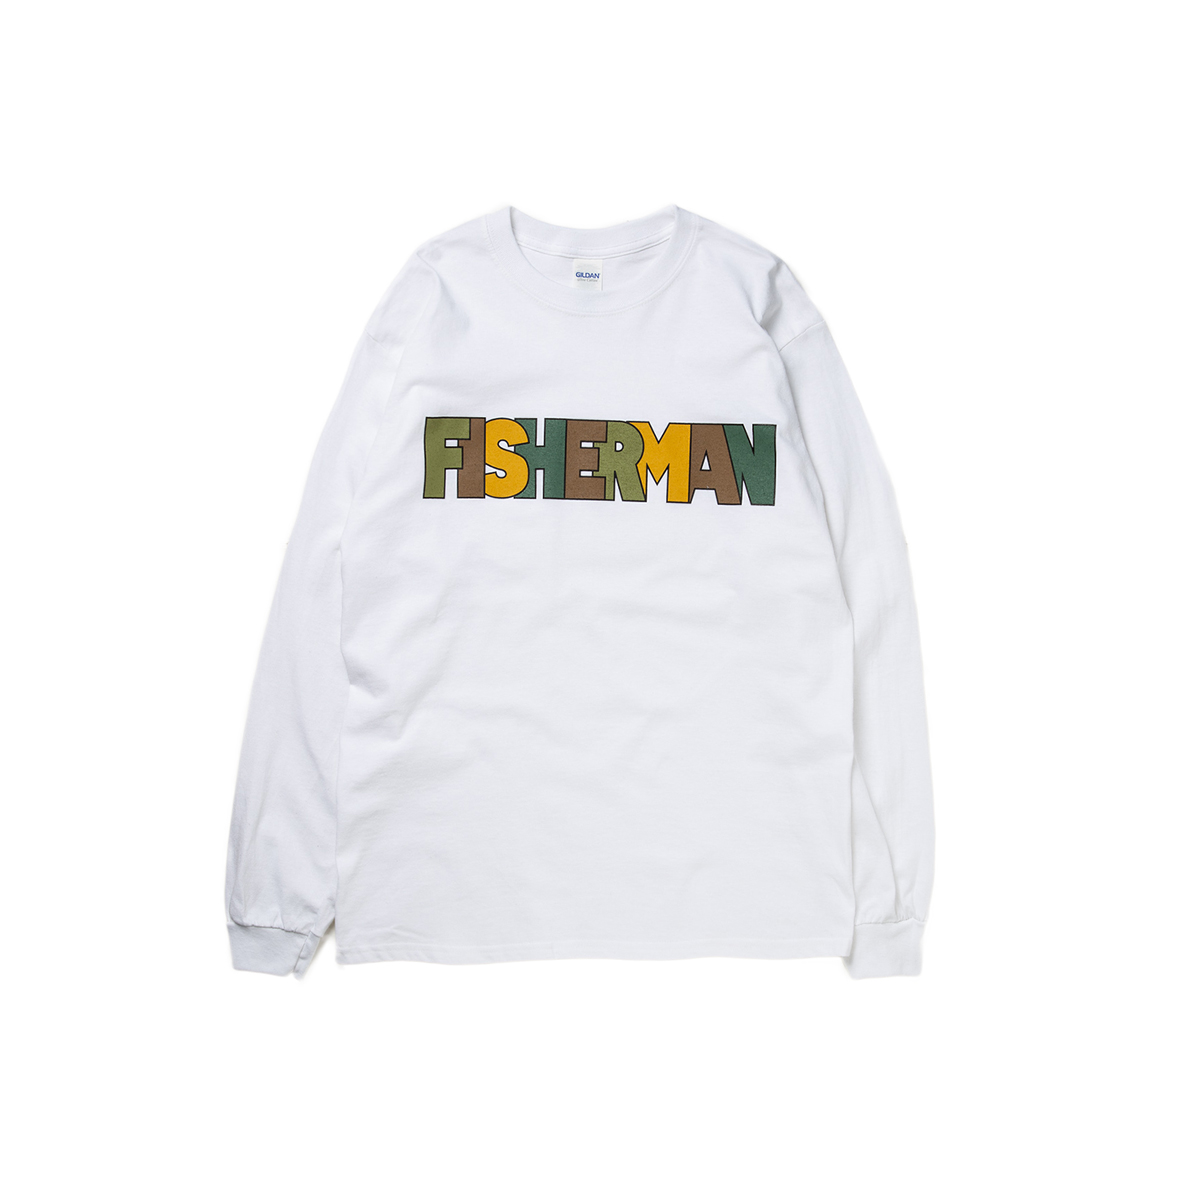 Army fisherman LONG SLEEVE